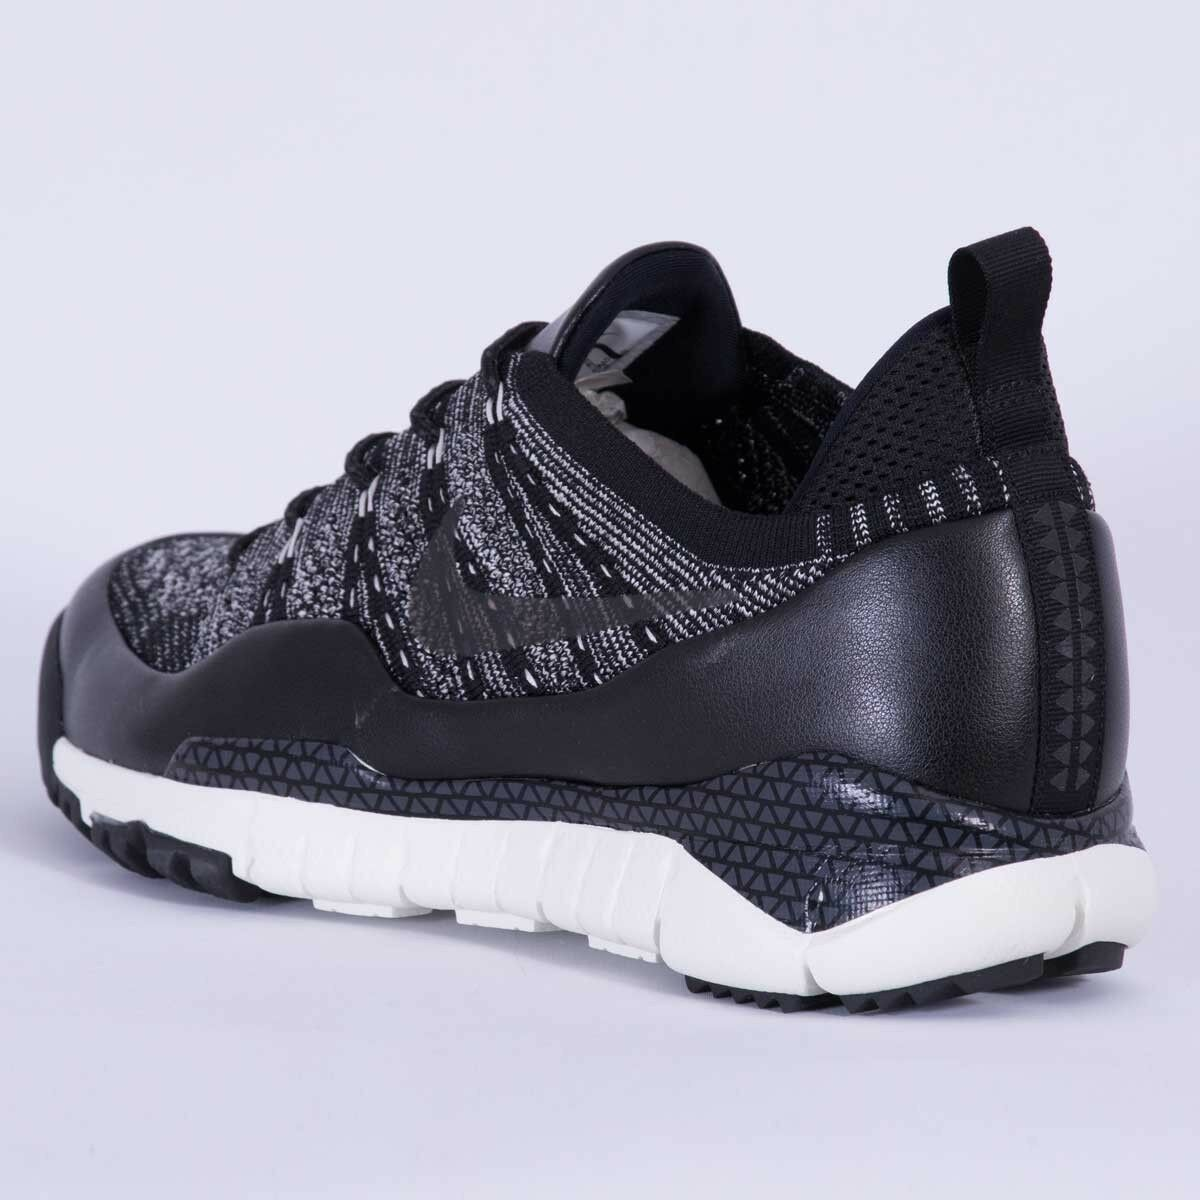 save off 87291 6fc6c ...  225  225  225 NIKE LUPINEK FLYKNIT LOW PROMO SAMPLE MEN NEW WITH BOx  (NO BOX ...